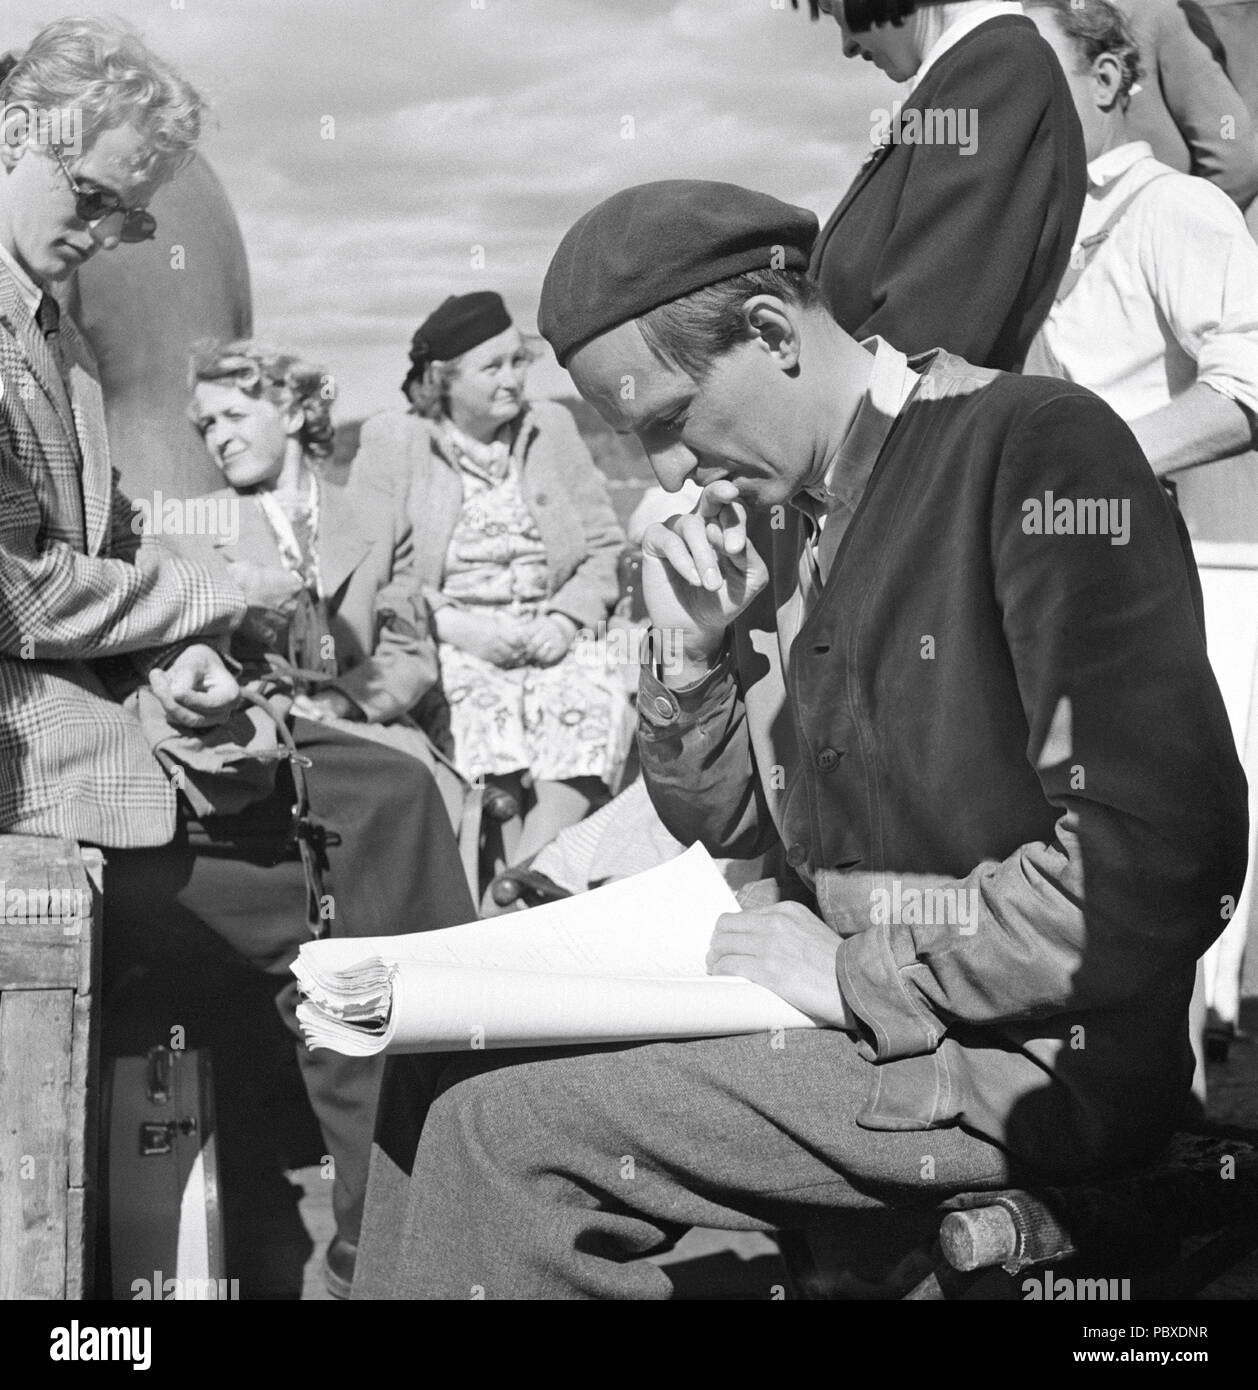 Ingmar Bergman. 1918-2007.  Swedish film director. Pictured here 1950 on the film set of the movie Summer Interlude. The film had premiere 1951. Photographer: Kristoffersson/AZ33-10 - Stock Image